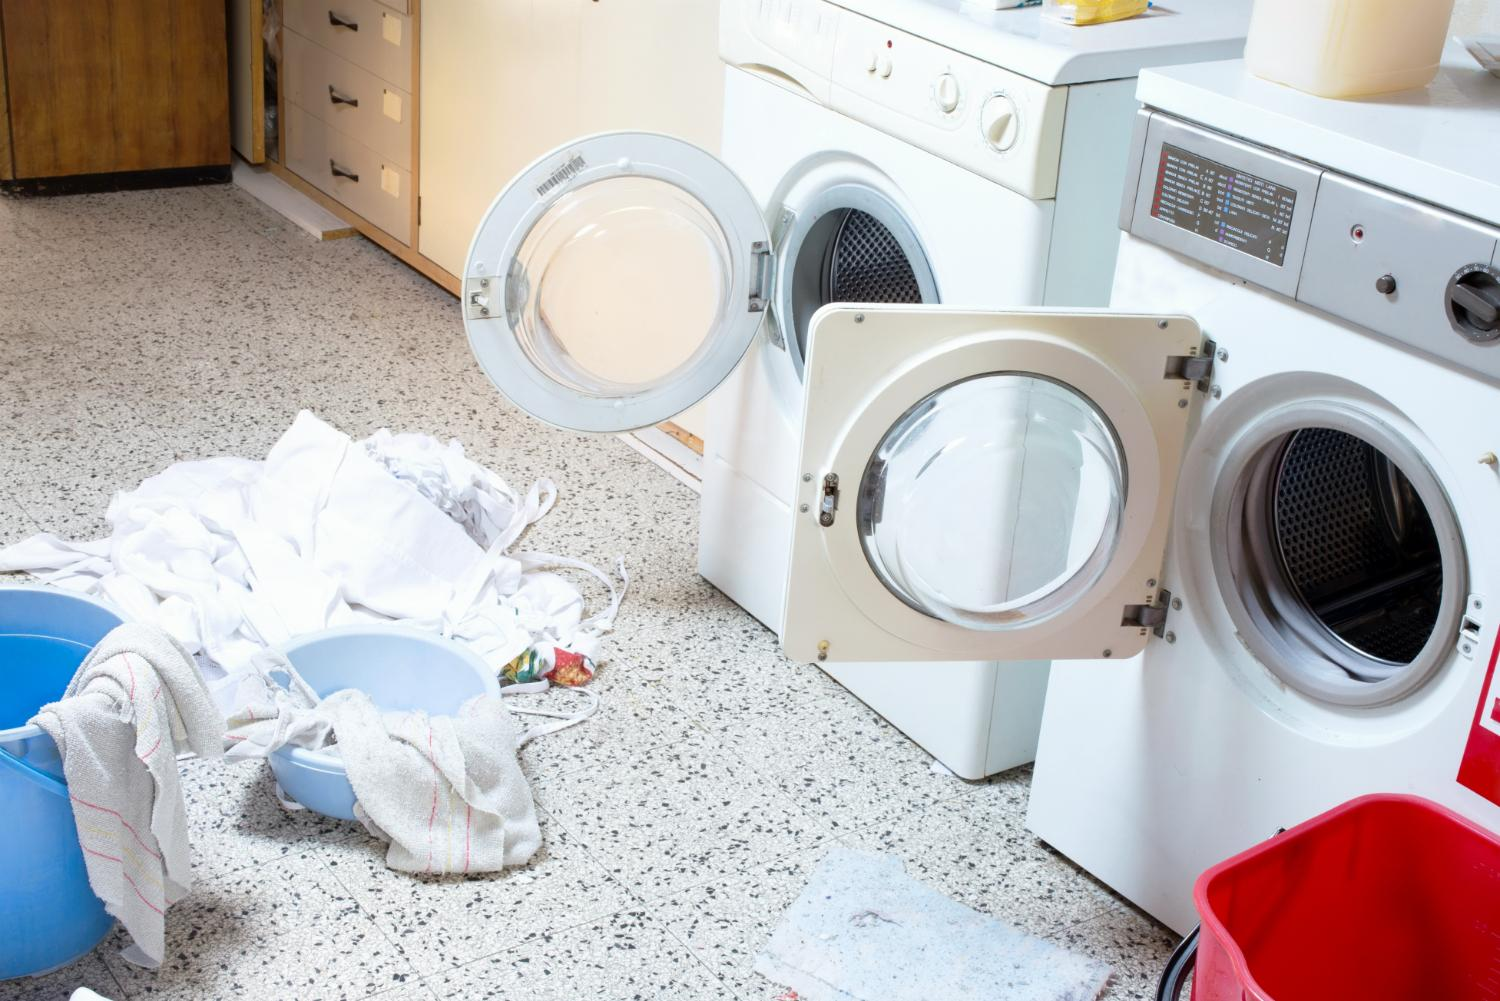 Gas Washers And Dryers Gas Dryers Vs Electric Dryers Digital Trends